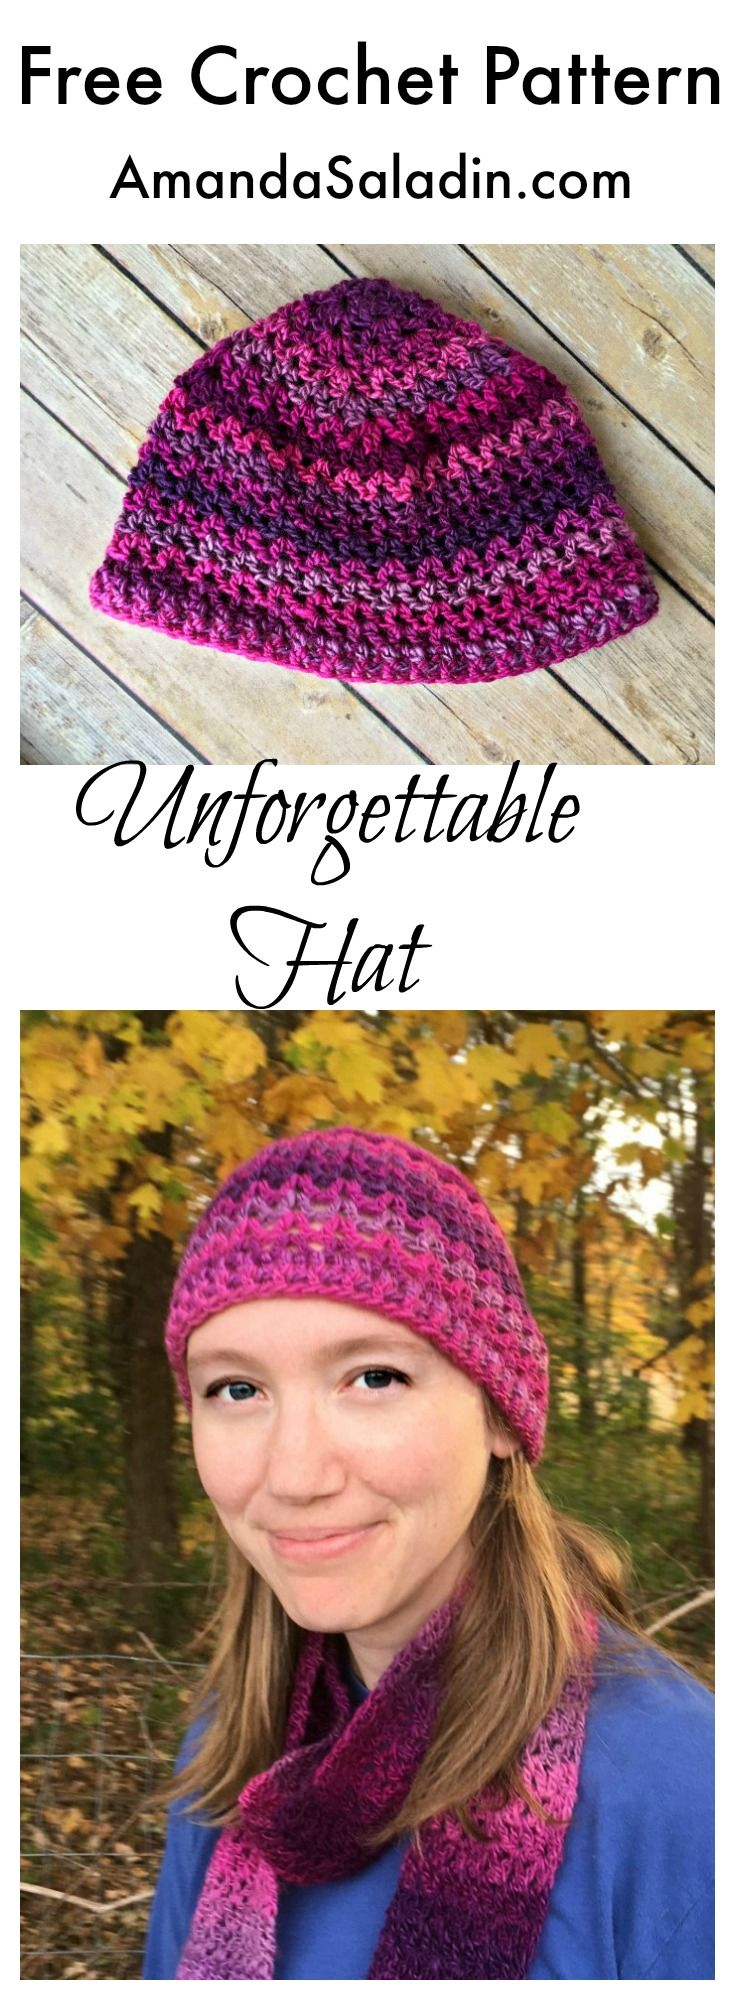 Here it is! The long-awaited free crochet hat pattern to match the popular Unforgettable One-Skein Scarf from Designing Crochet by Amanda Saladin.